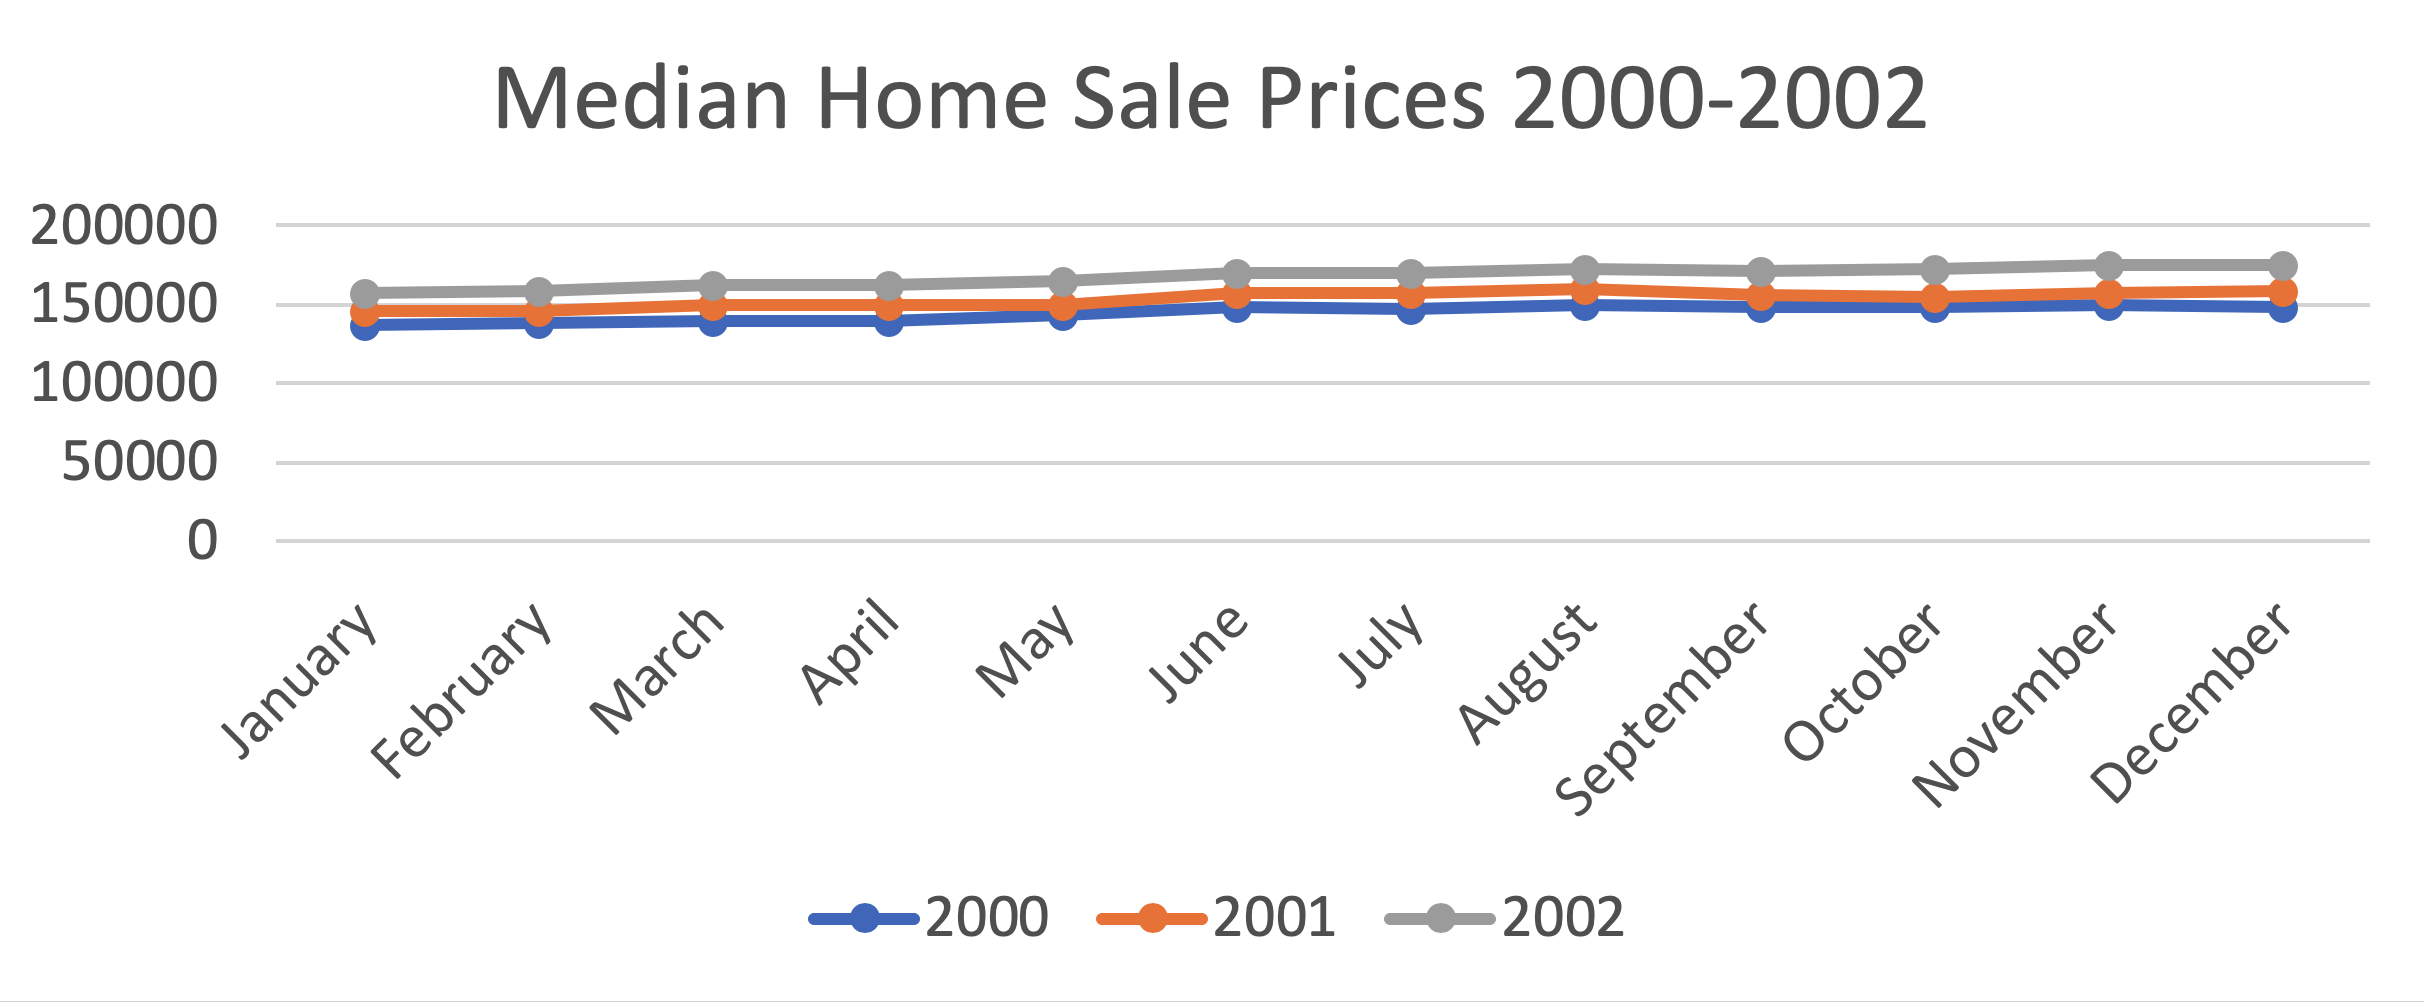 median home sale price 2000-2002